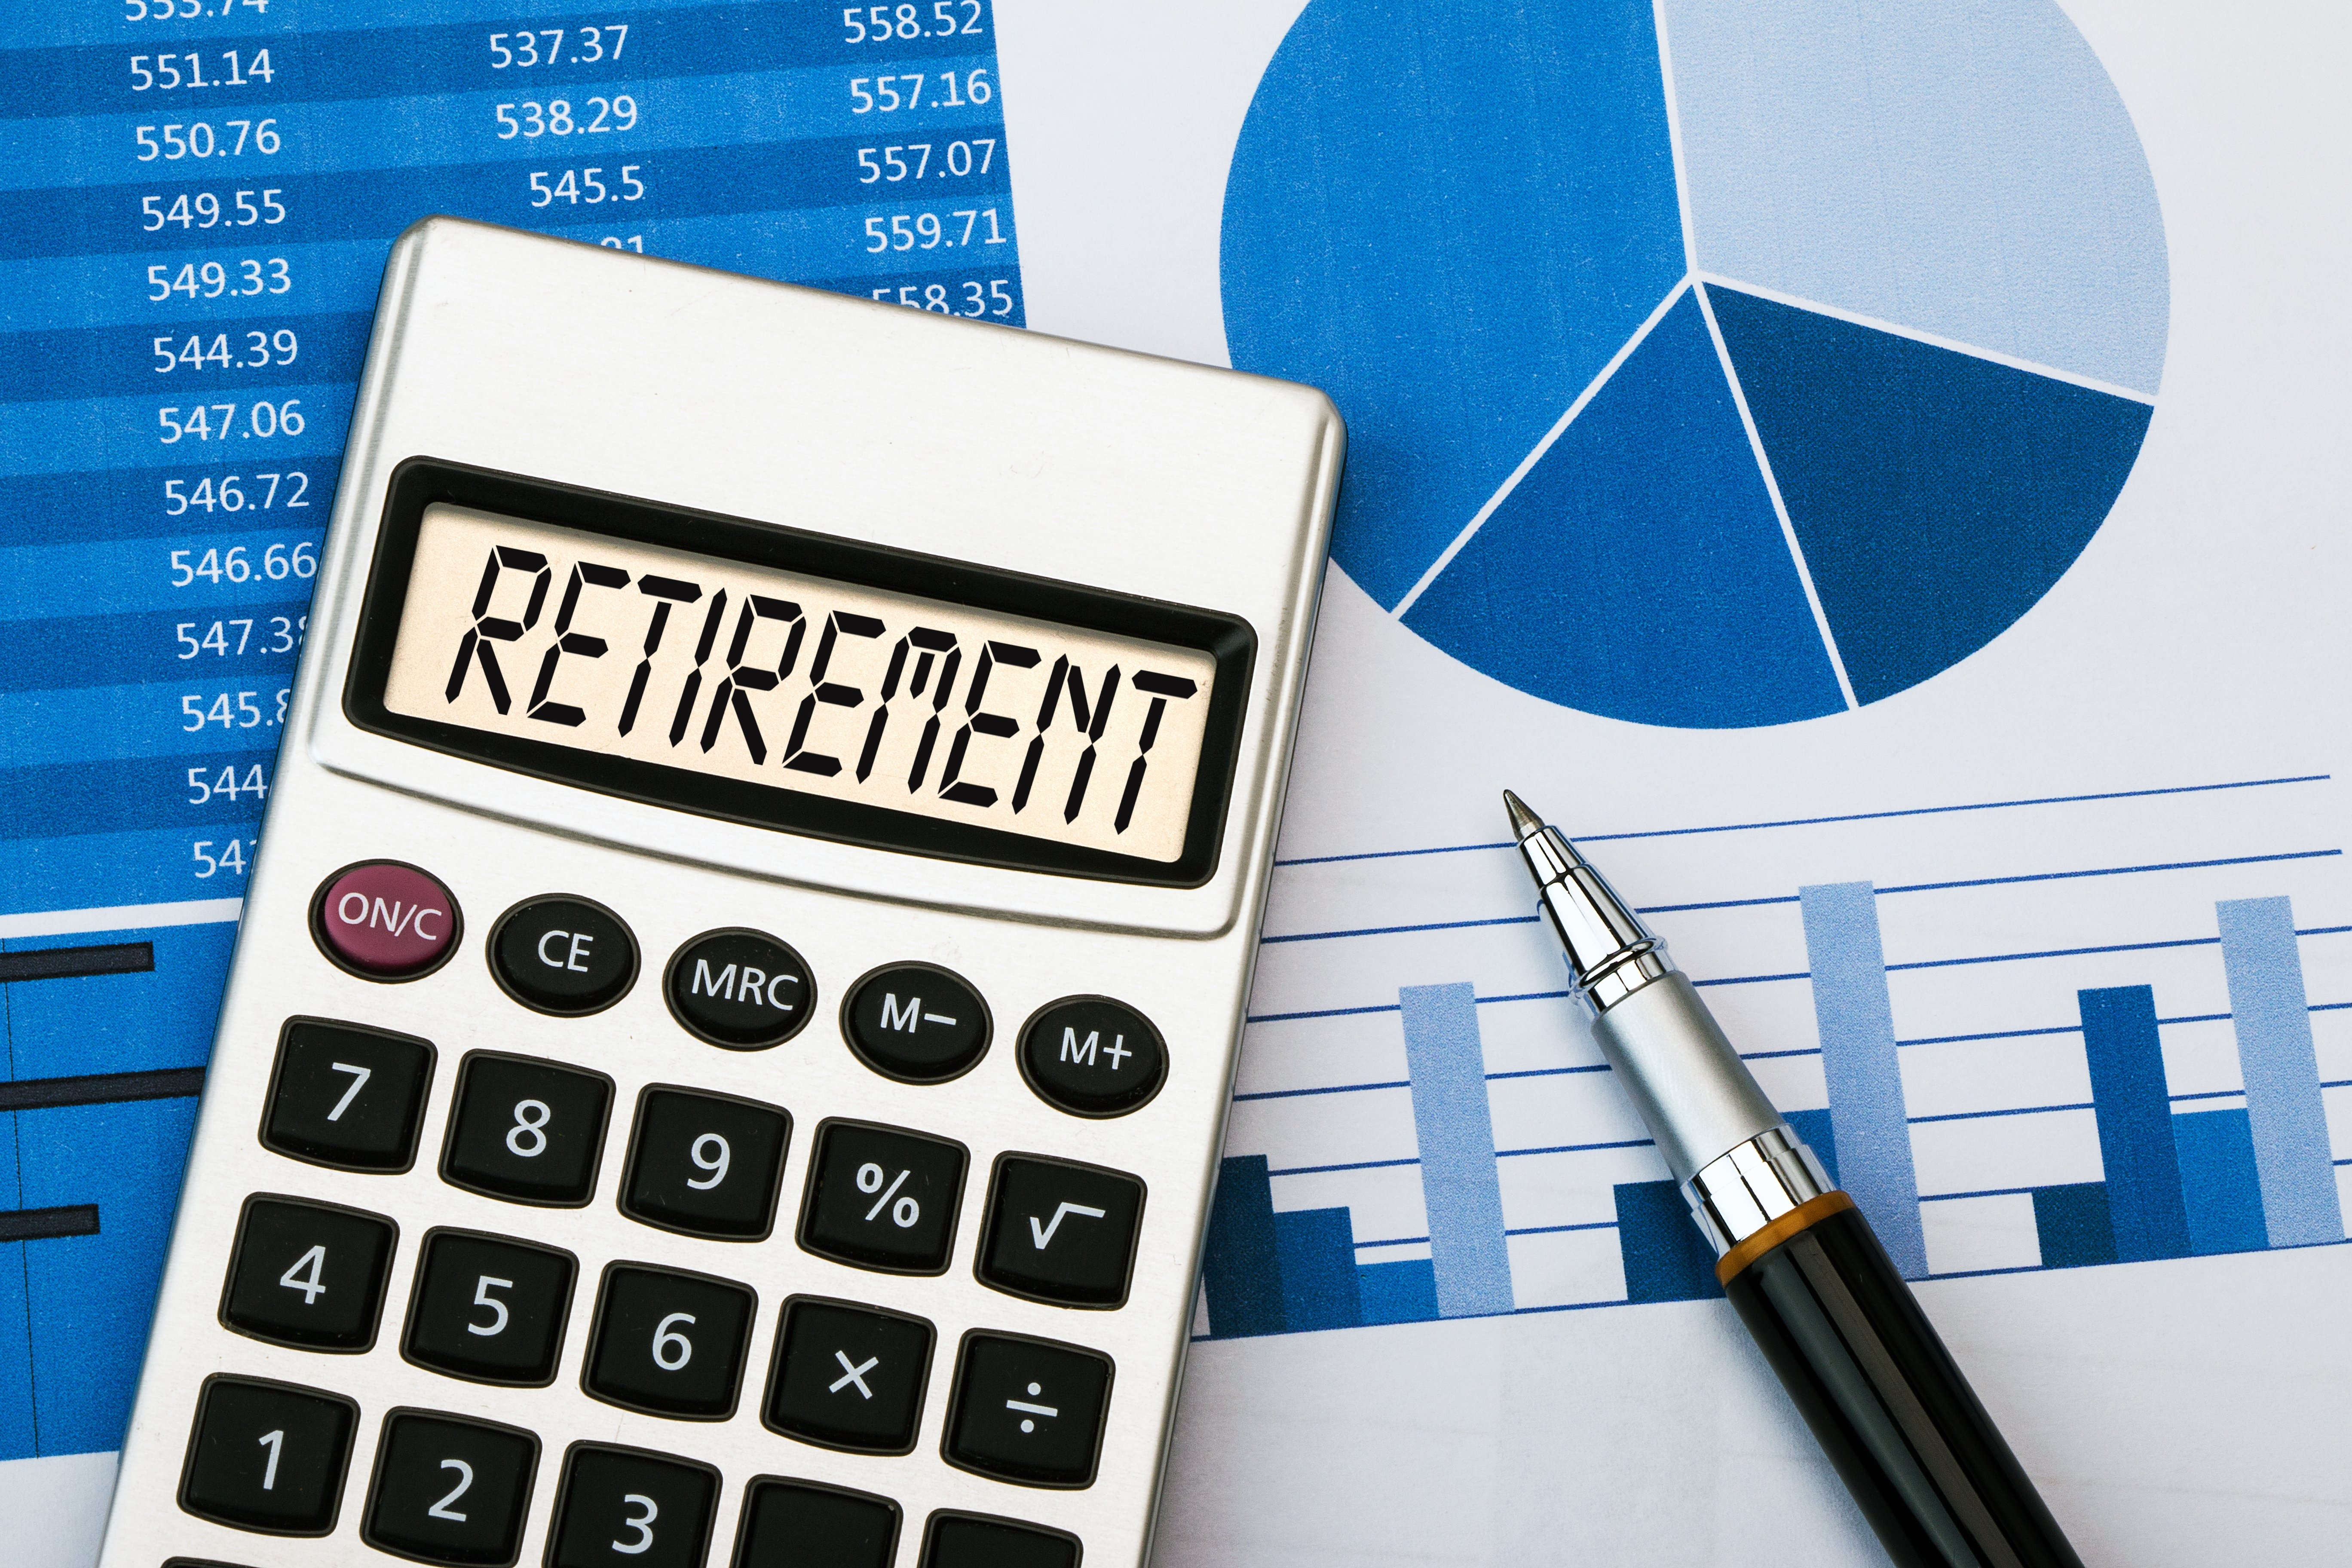 Make sure you are prepared for all the costs that come with retirement.